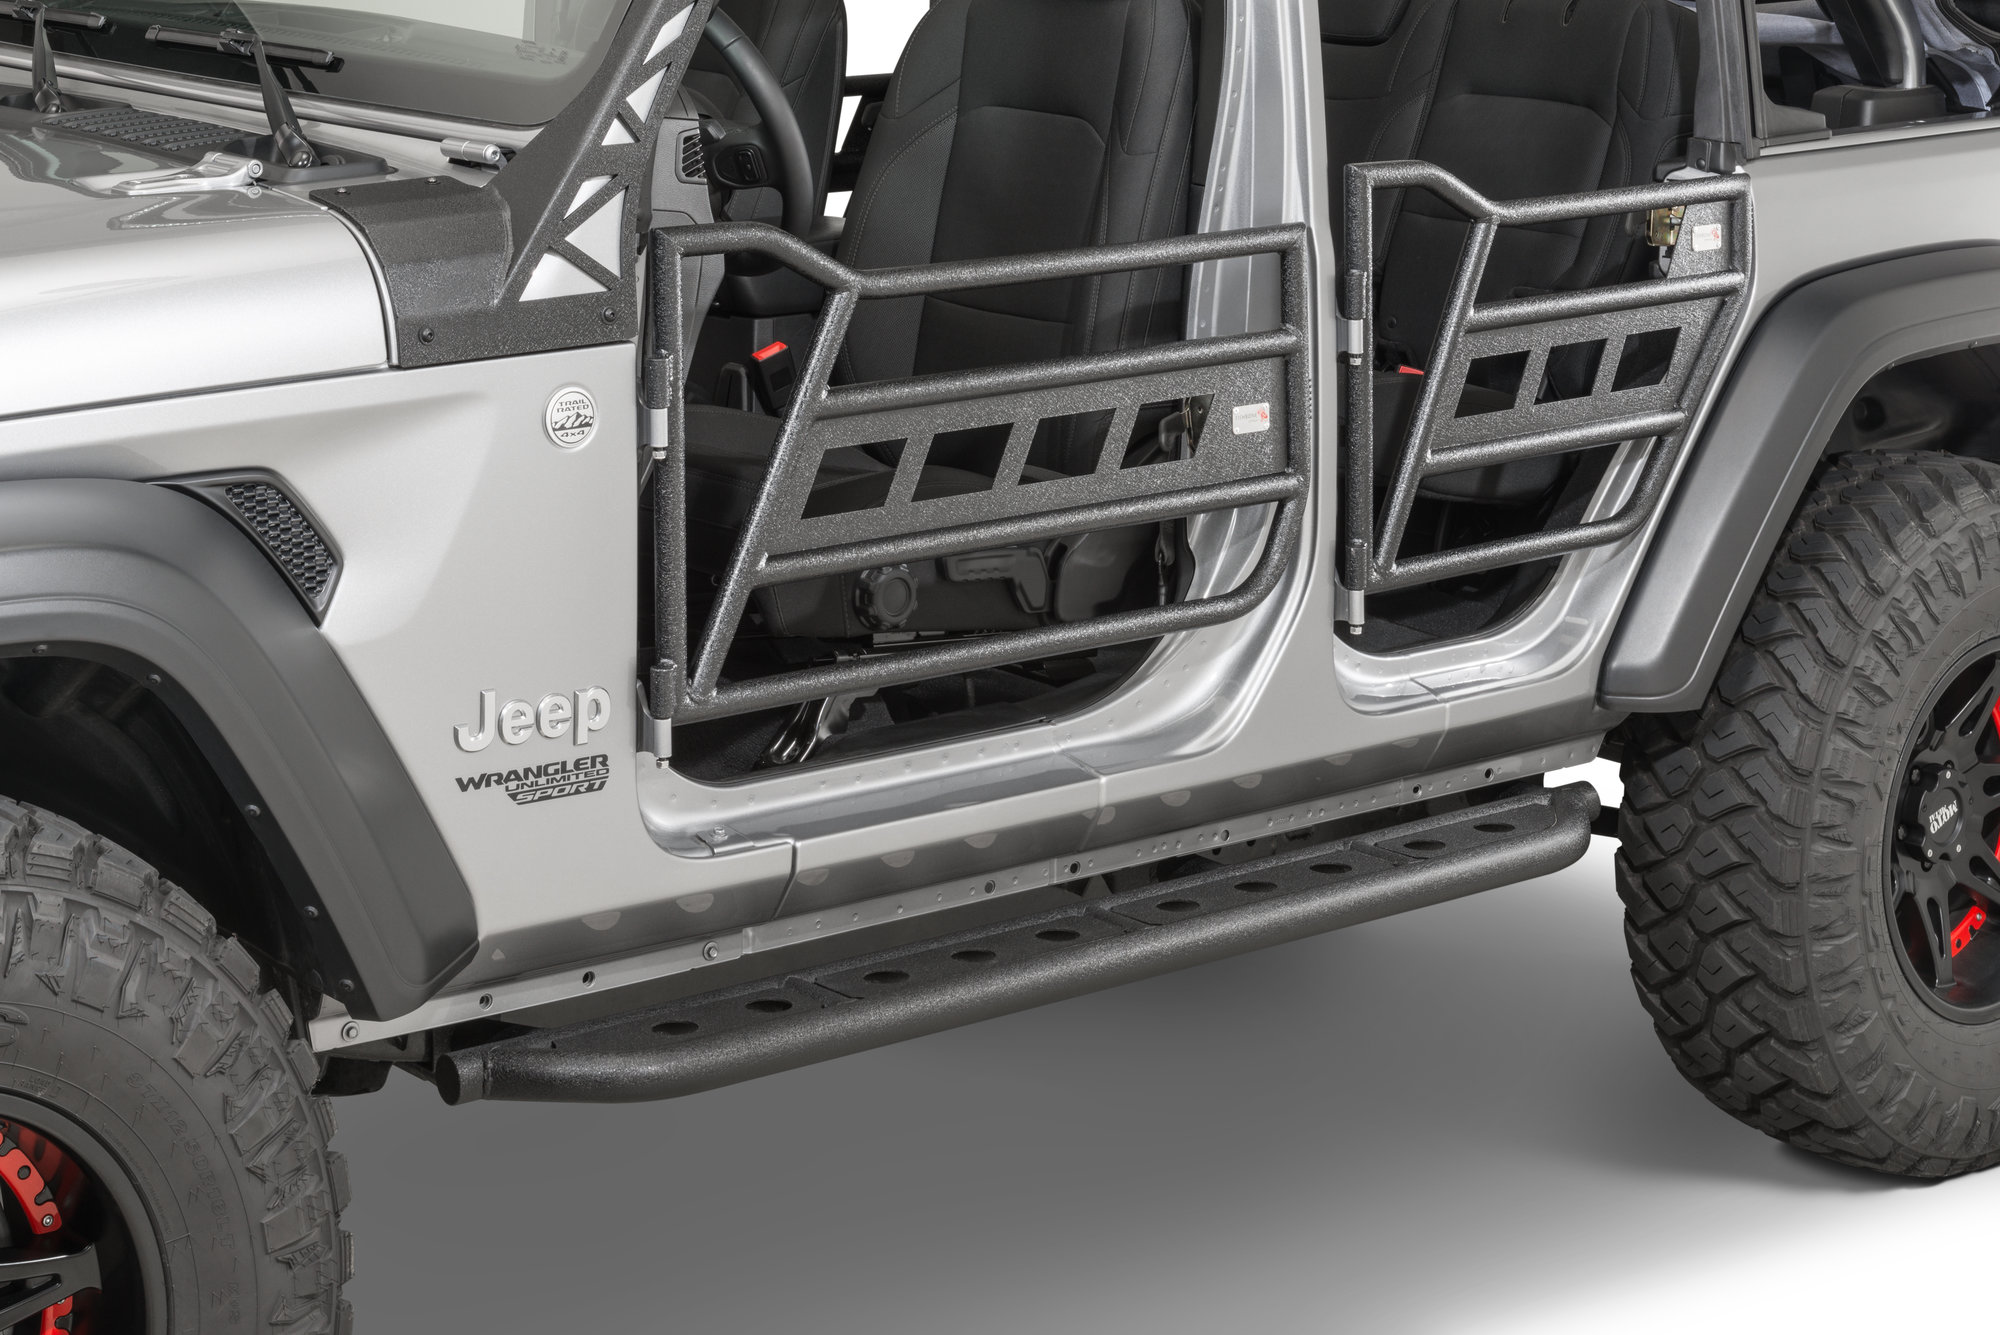 hight resolution of fishbone offroad fb24086 front and rear tube doors for 18 19 jeep wrangler jl 4 door unlimited quadratec